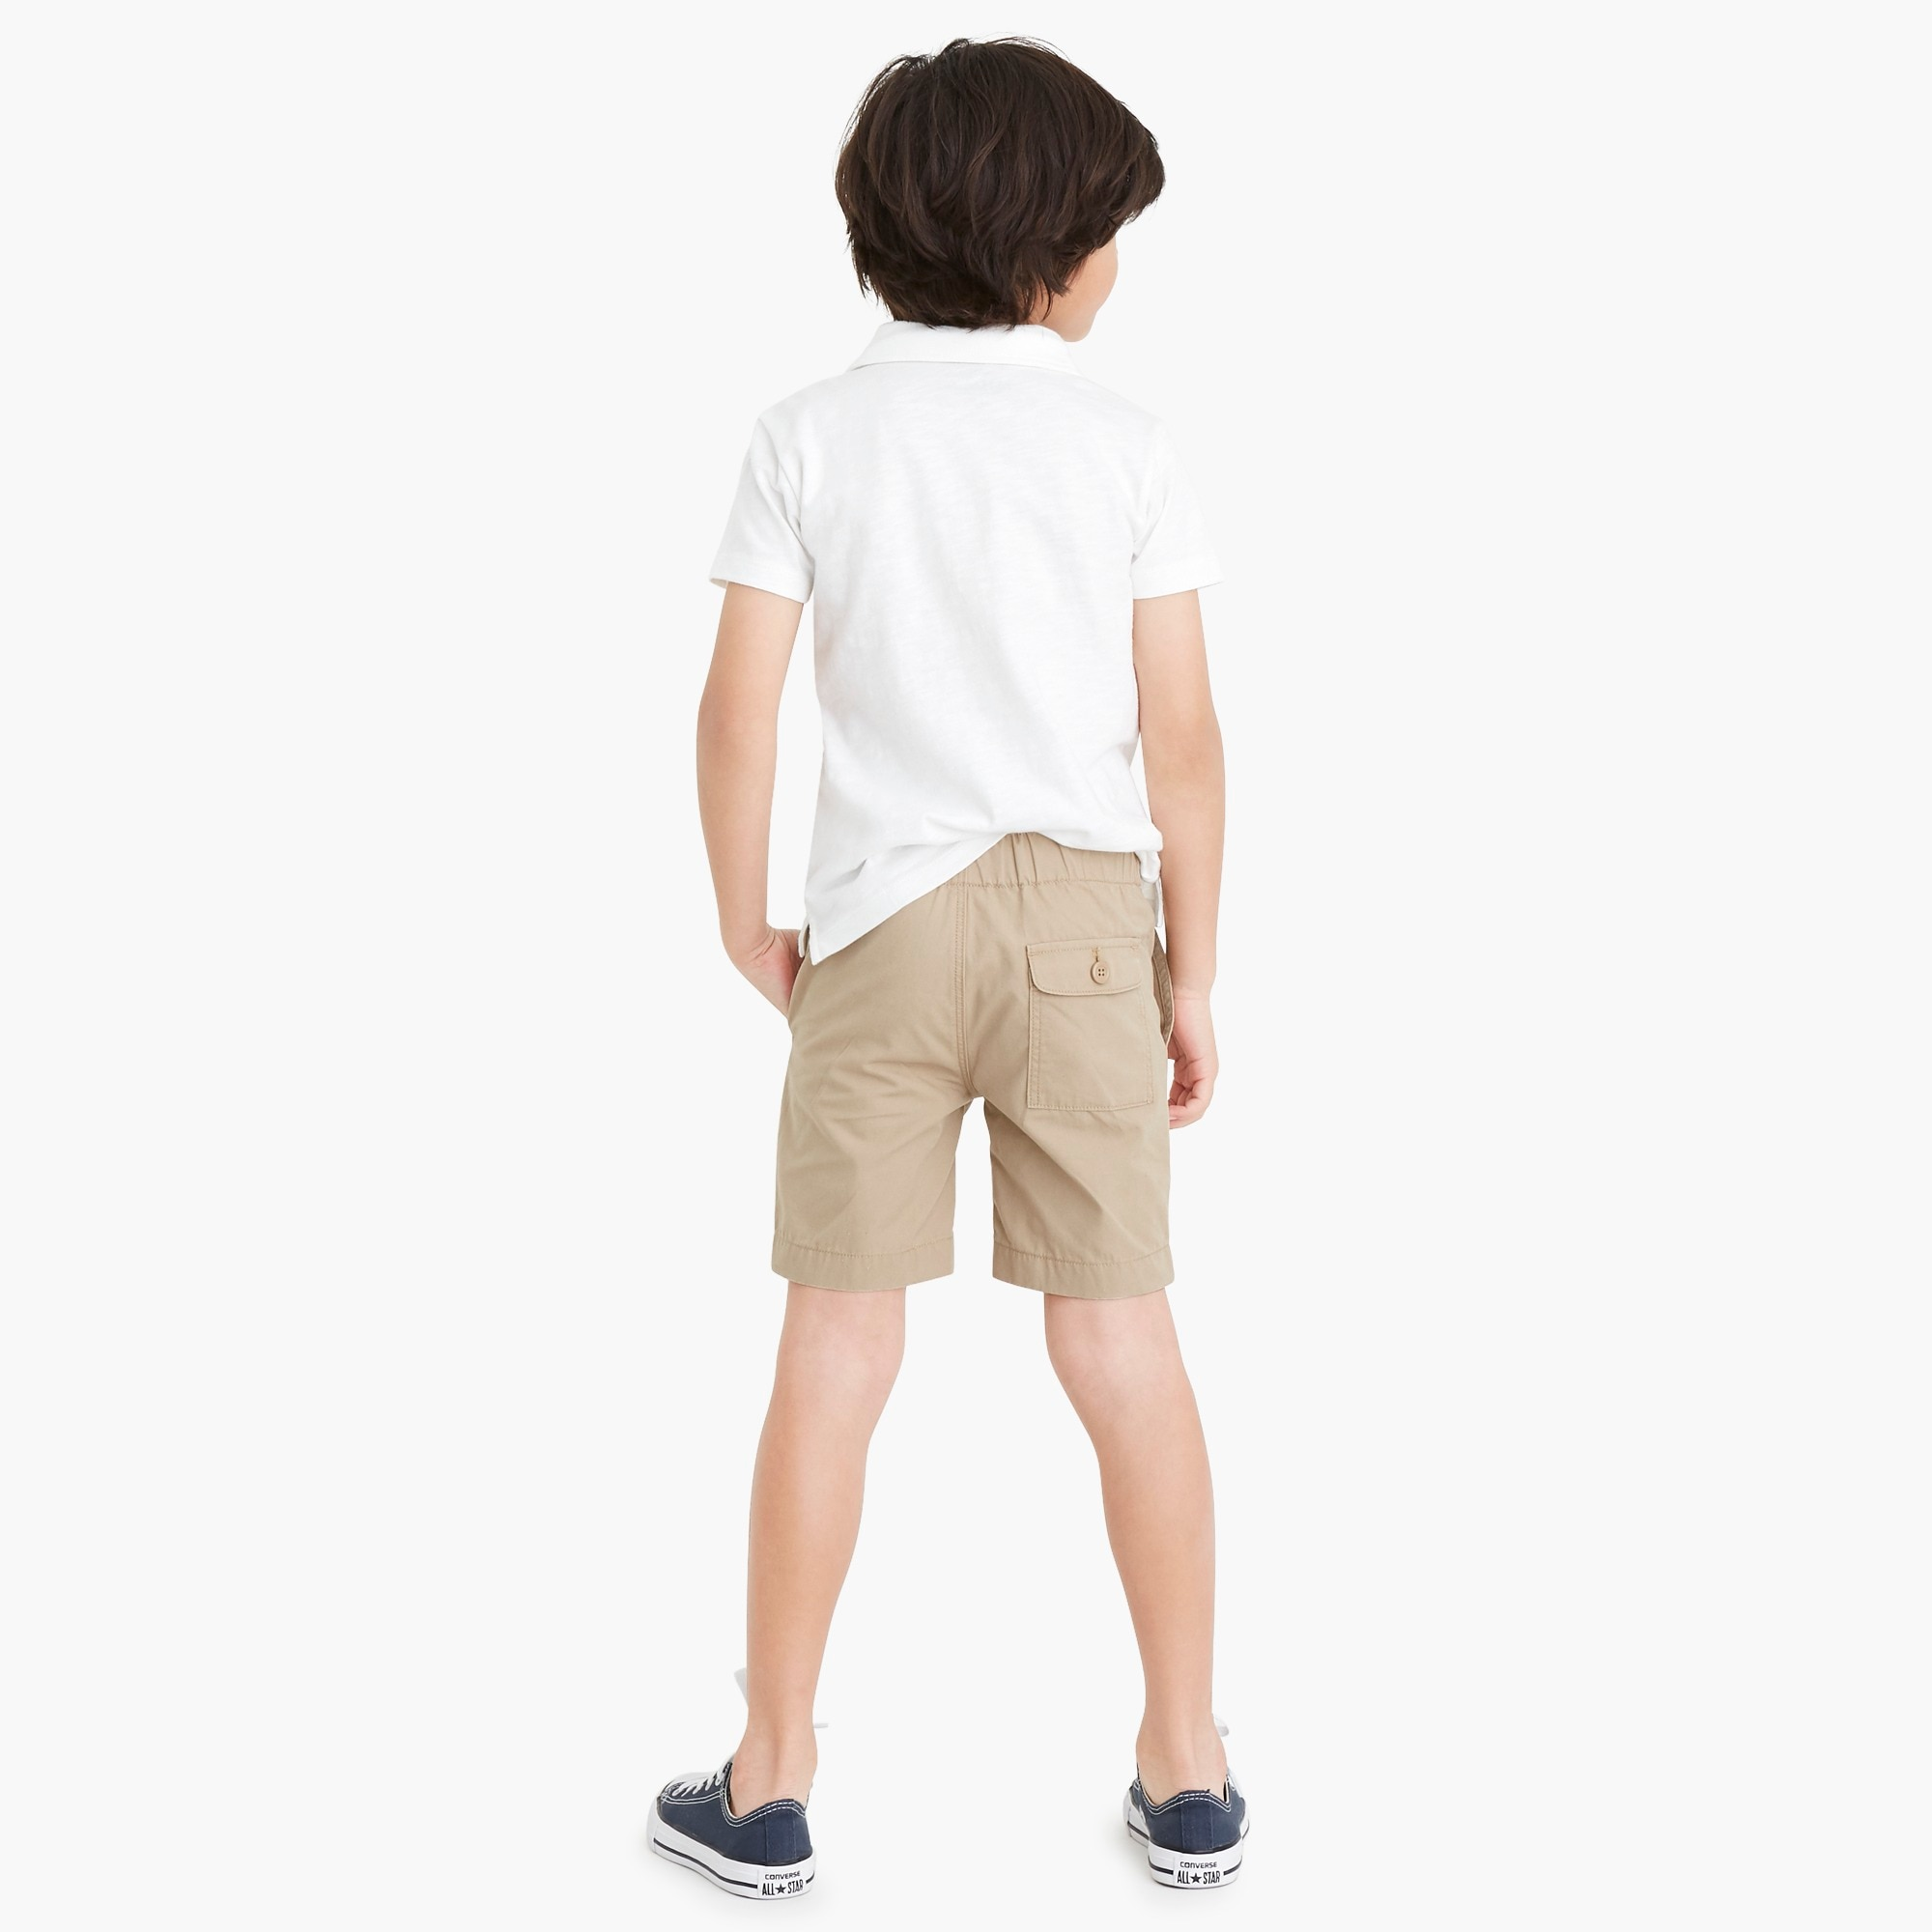 Image 3 for Boys' pull-on short in lightweight chino